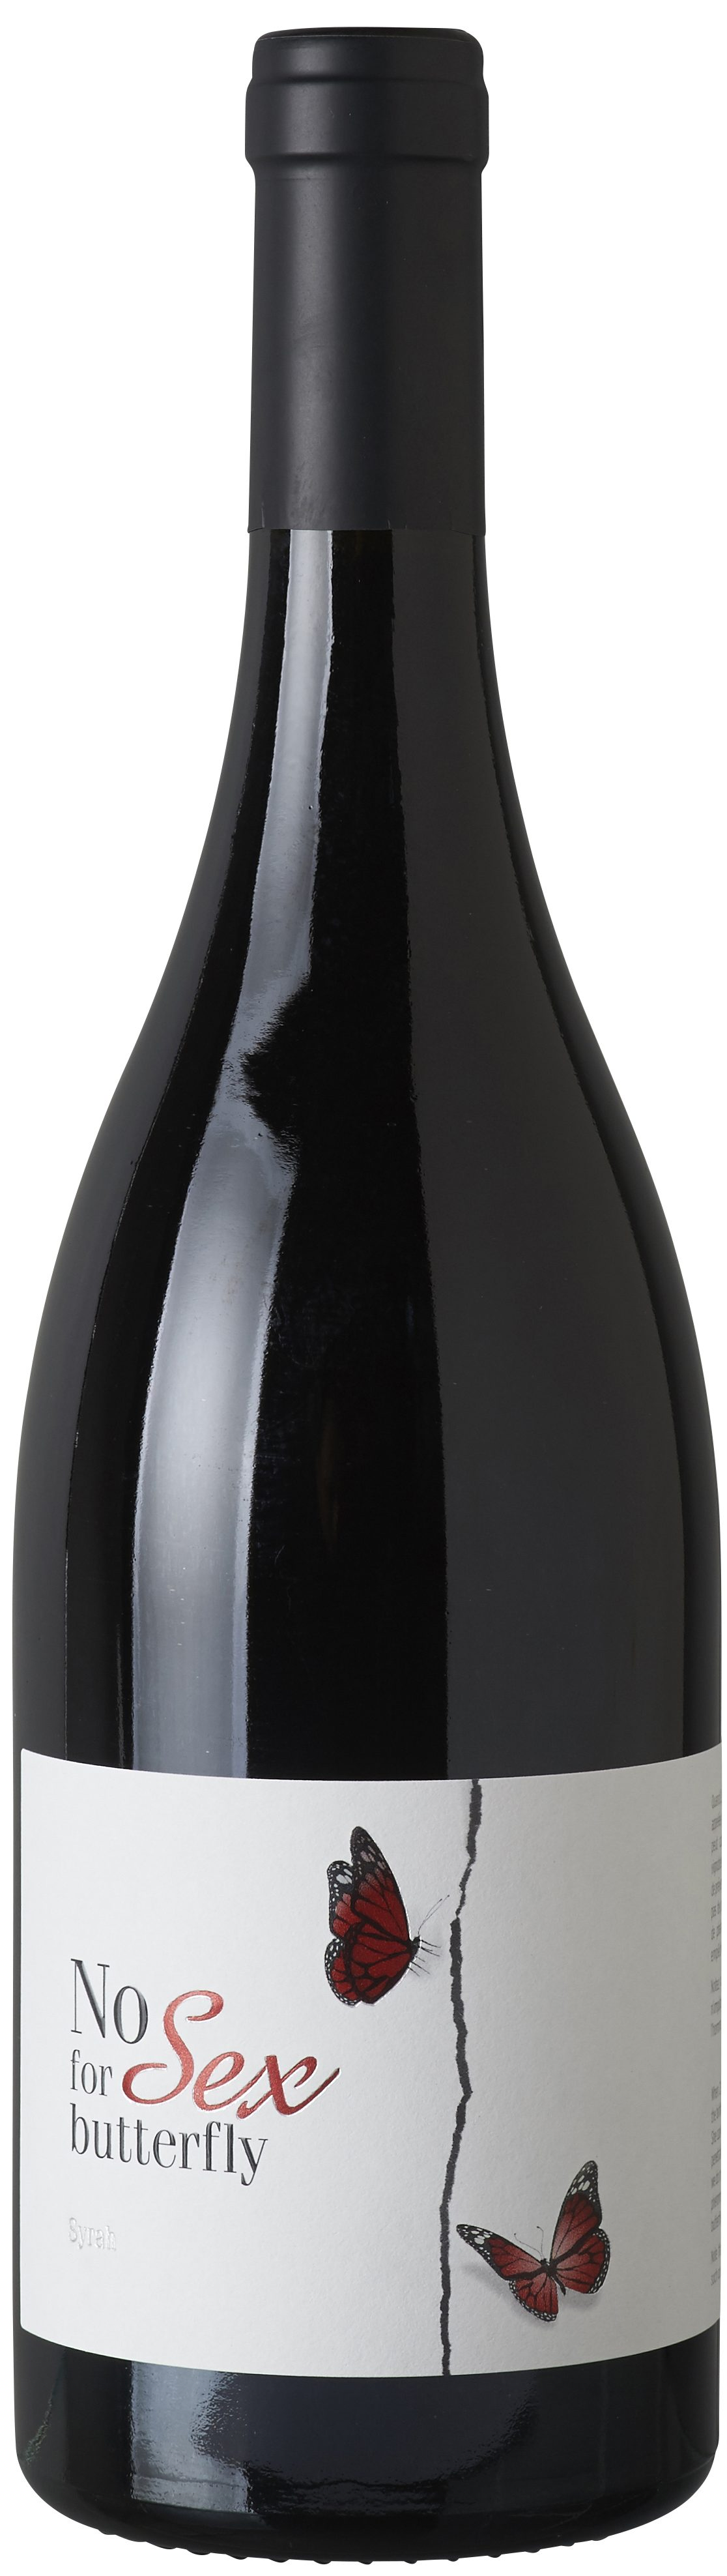 Château de Valcombe No Sex for Butterfly Syrah